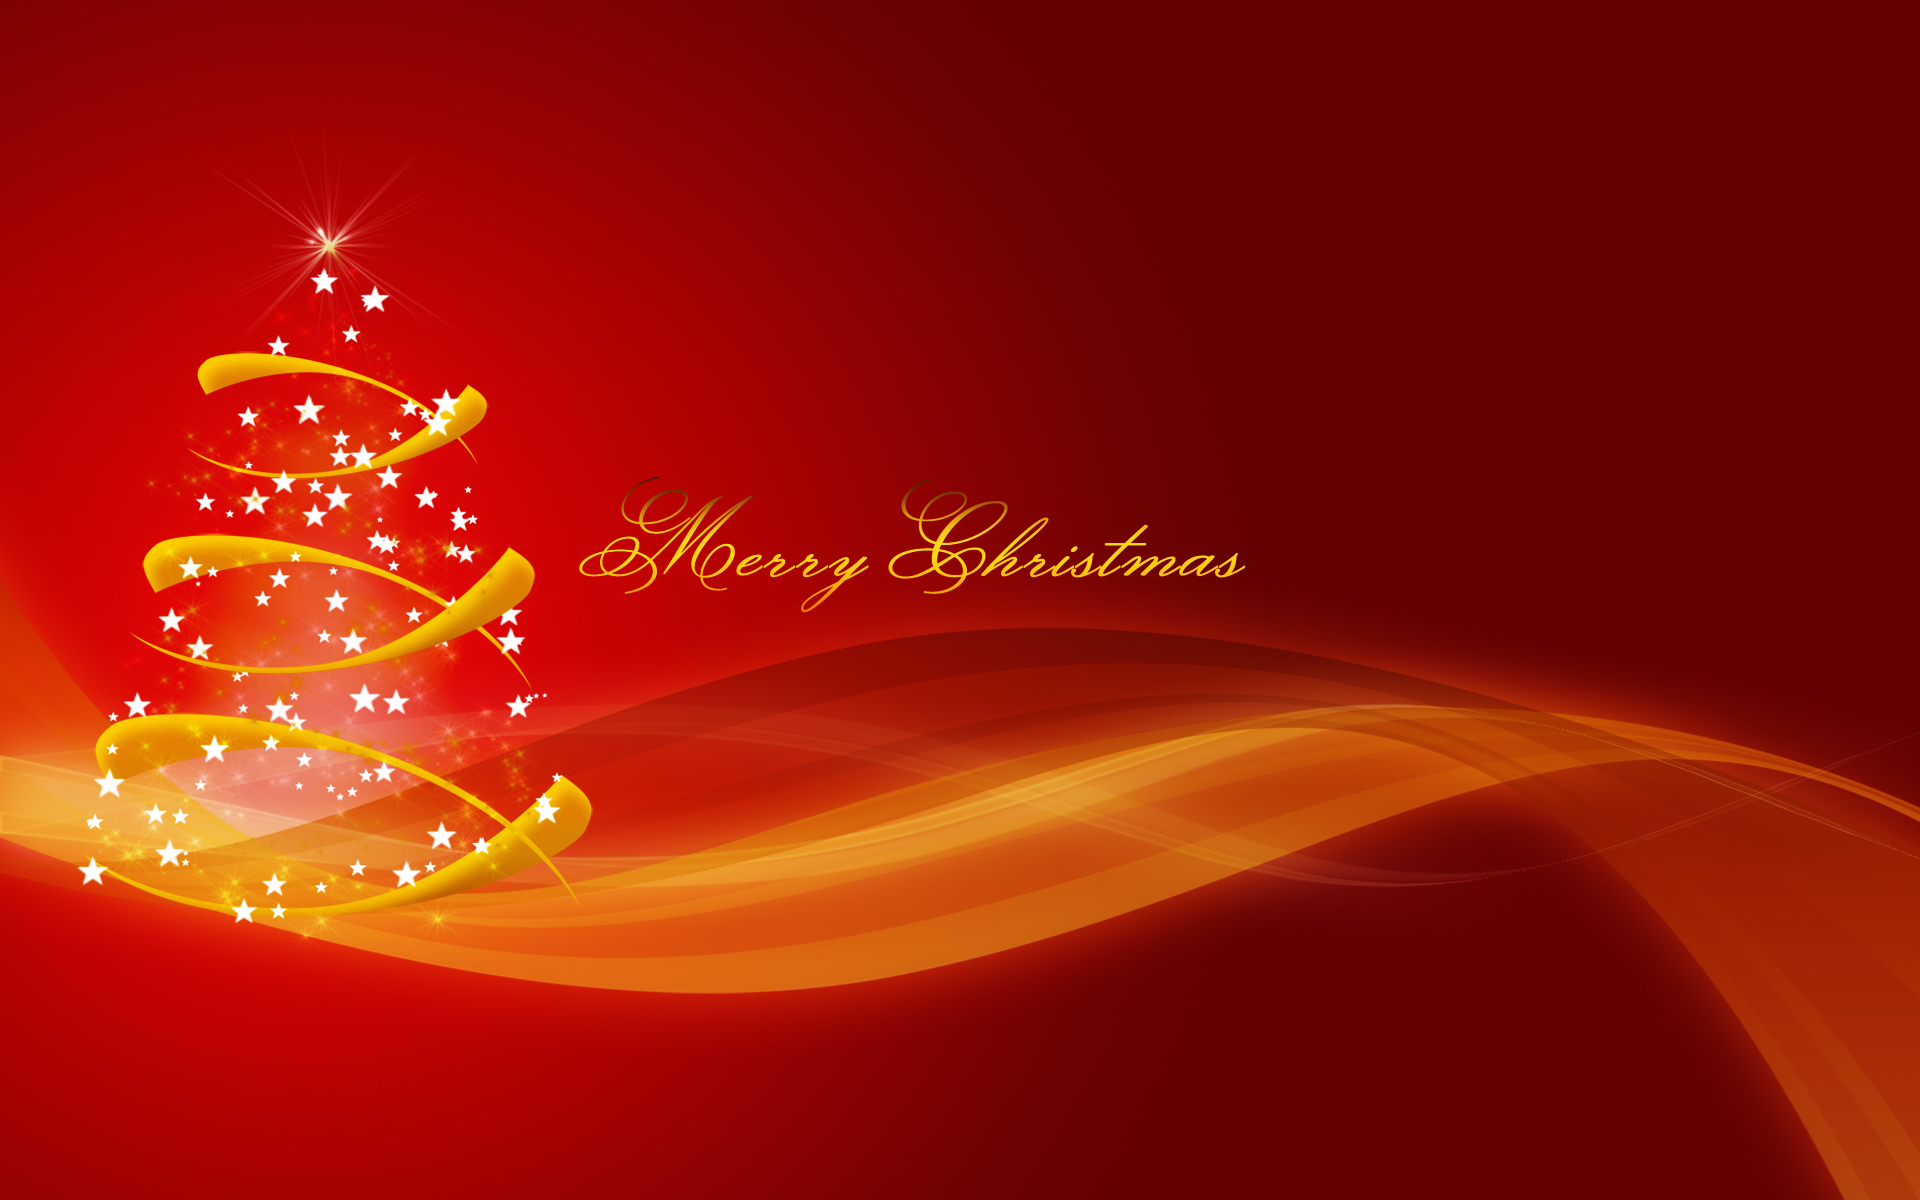 hd wallpapers kerst